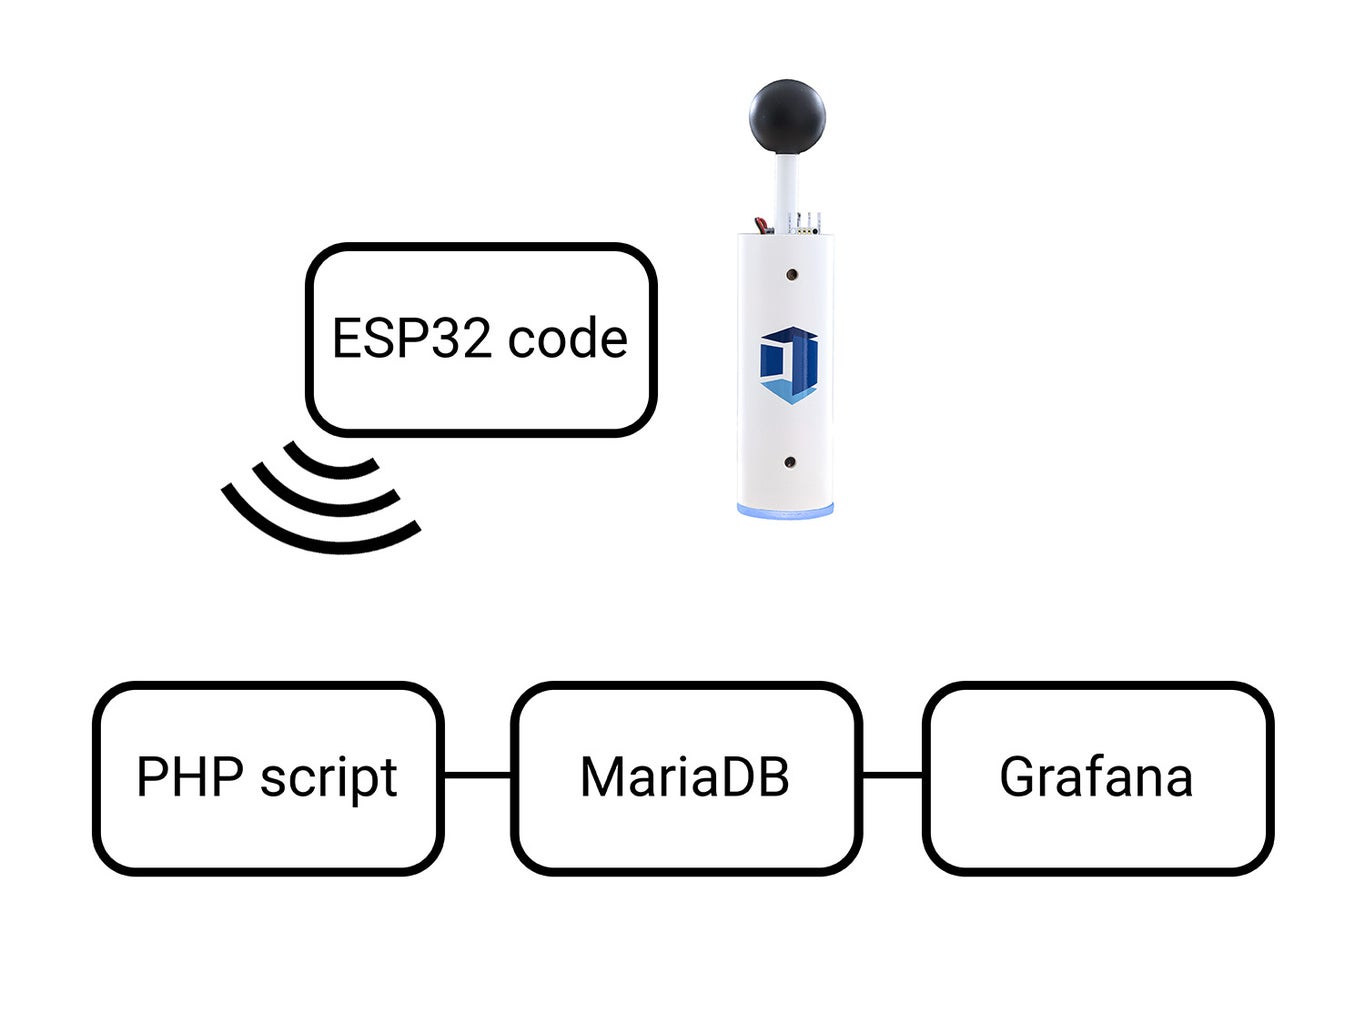 Software – ESP, PHP, and MariaDB Configuration